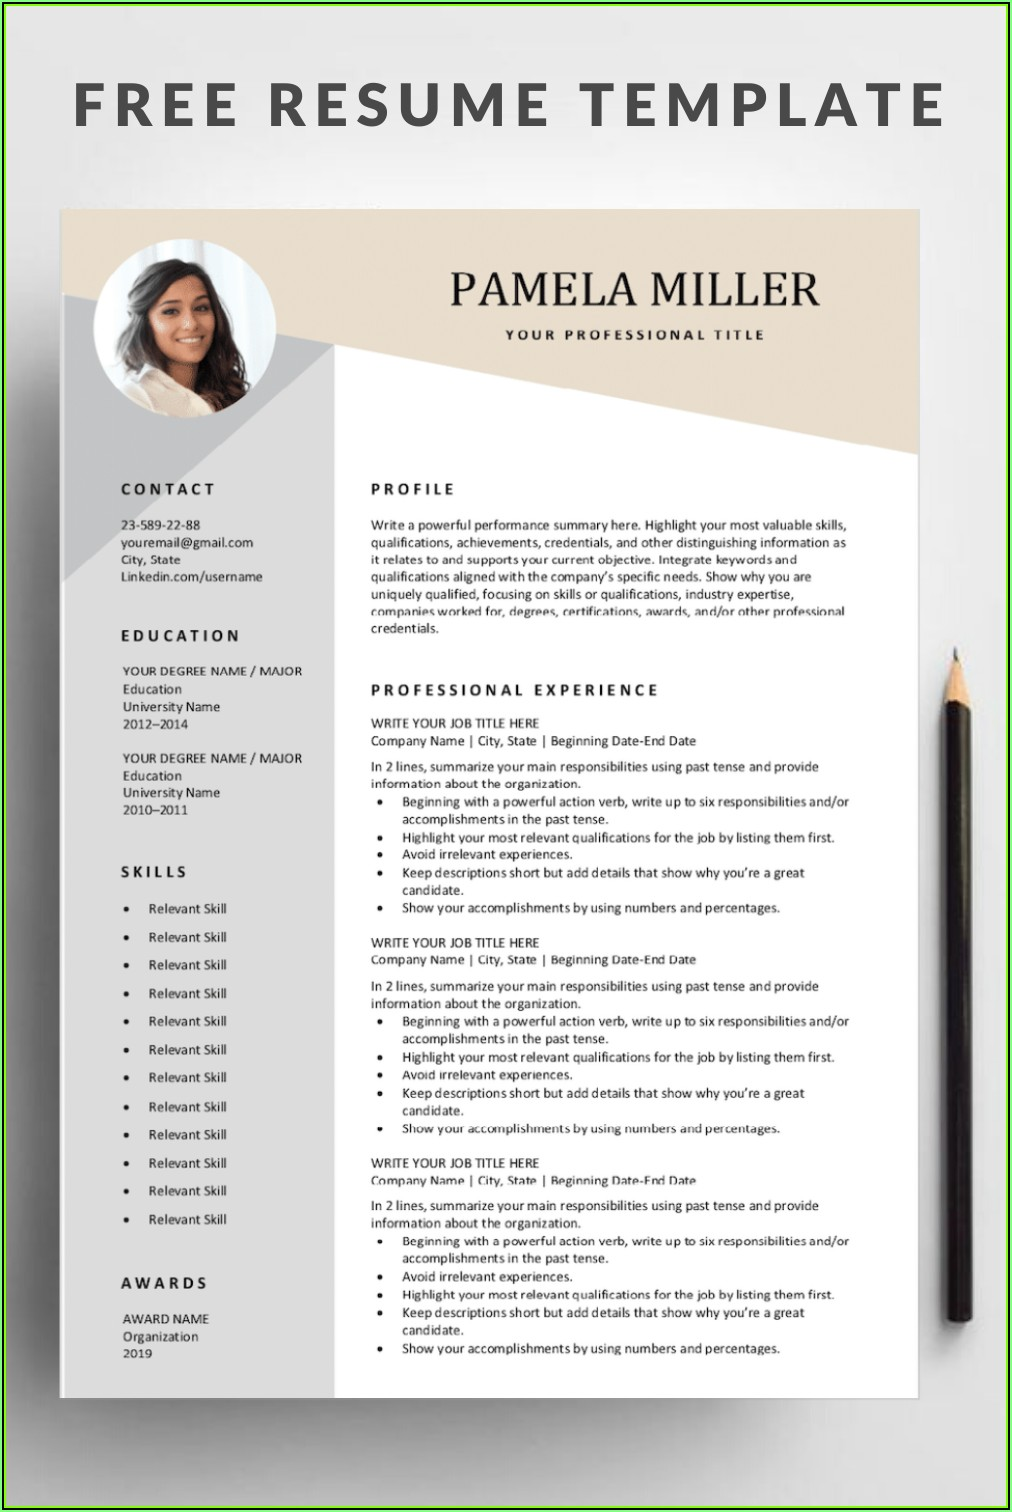 Totally Free Downloadable Resume Templates